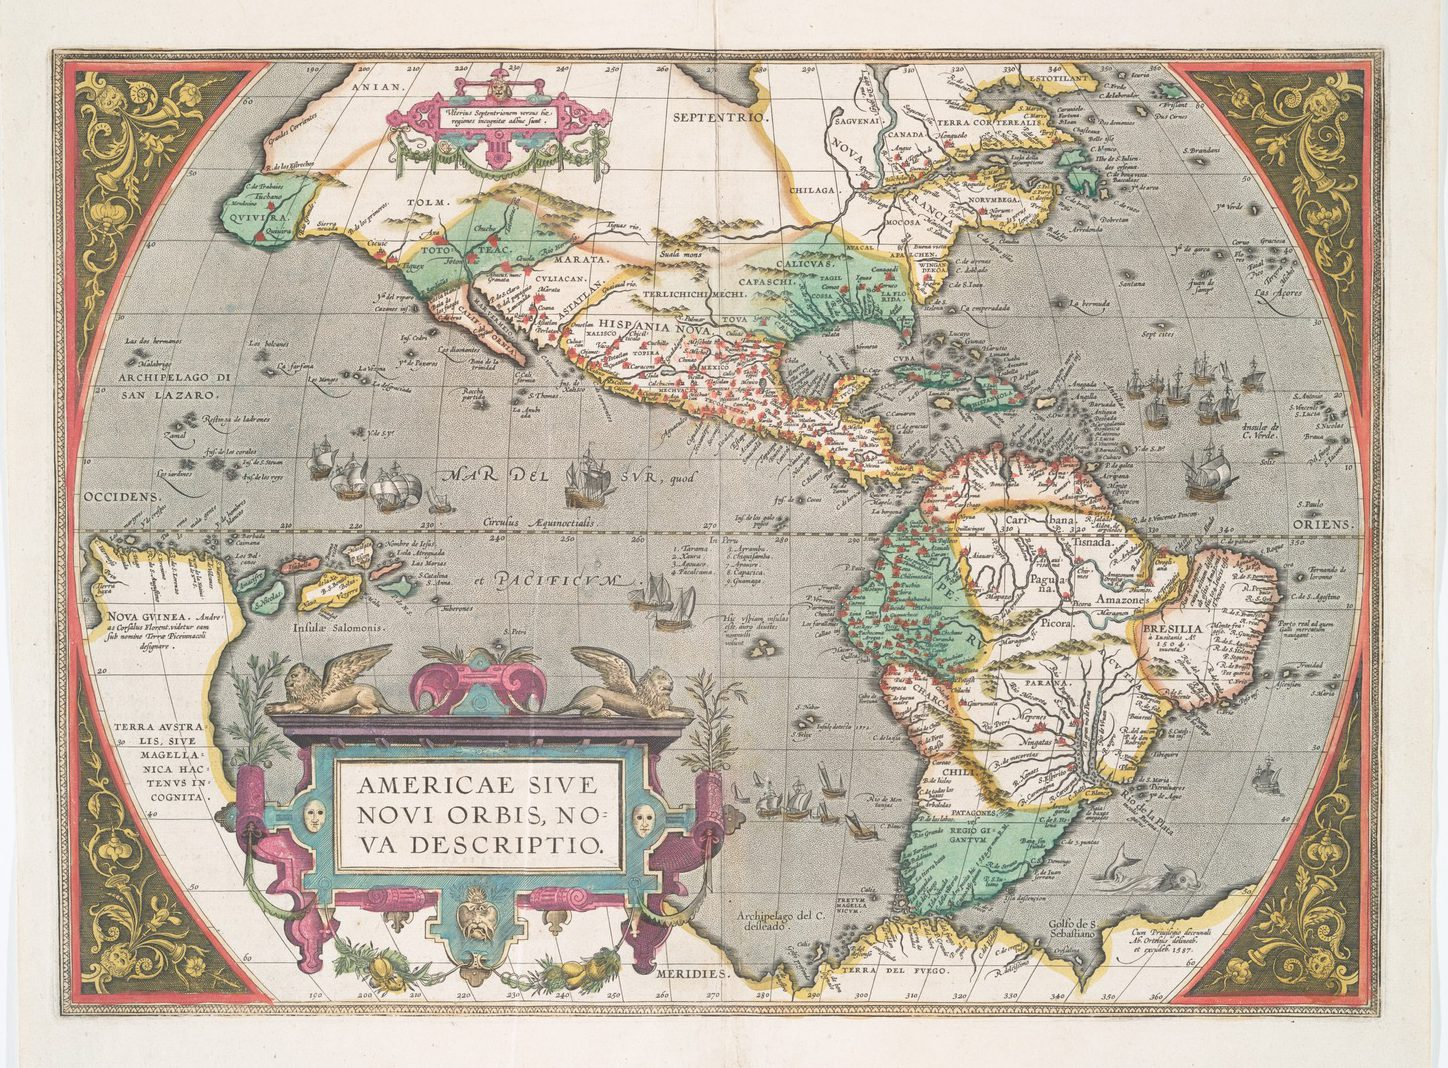 Link to NYPL Slaughter Collection of Maps